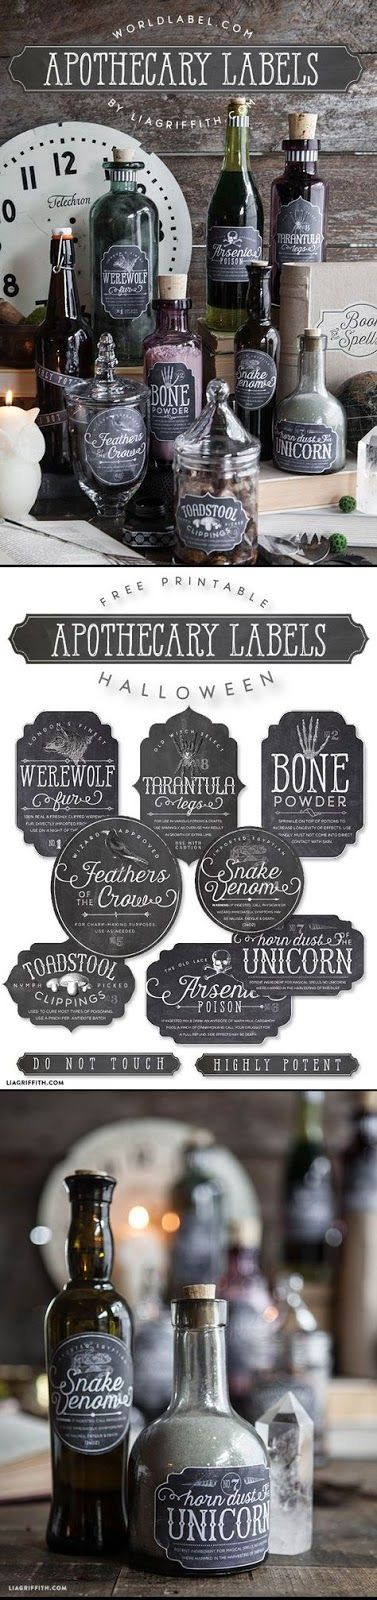 Halloween Decor Free Printable's